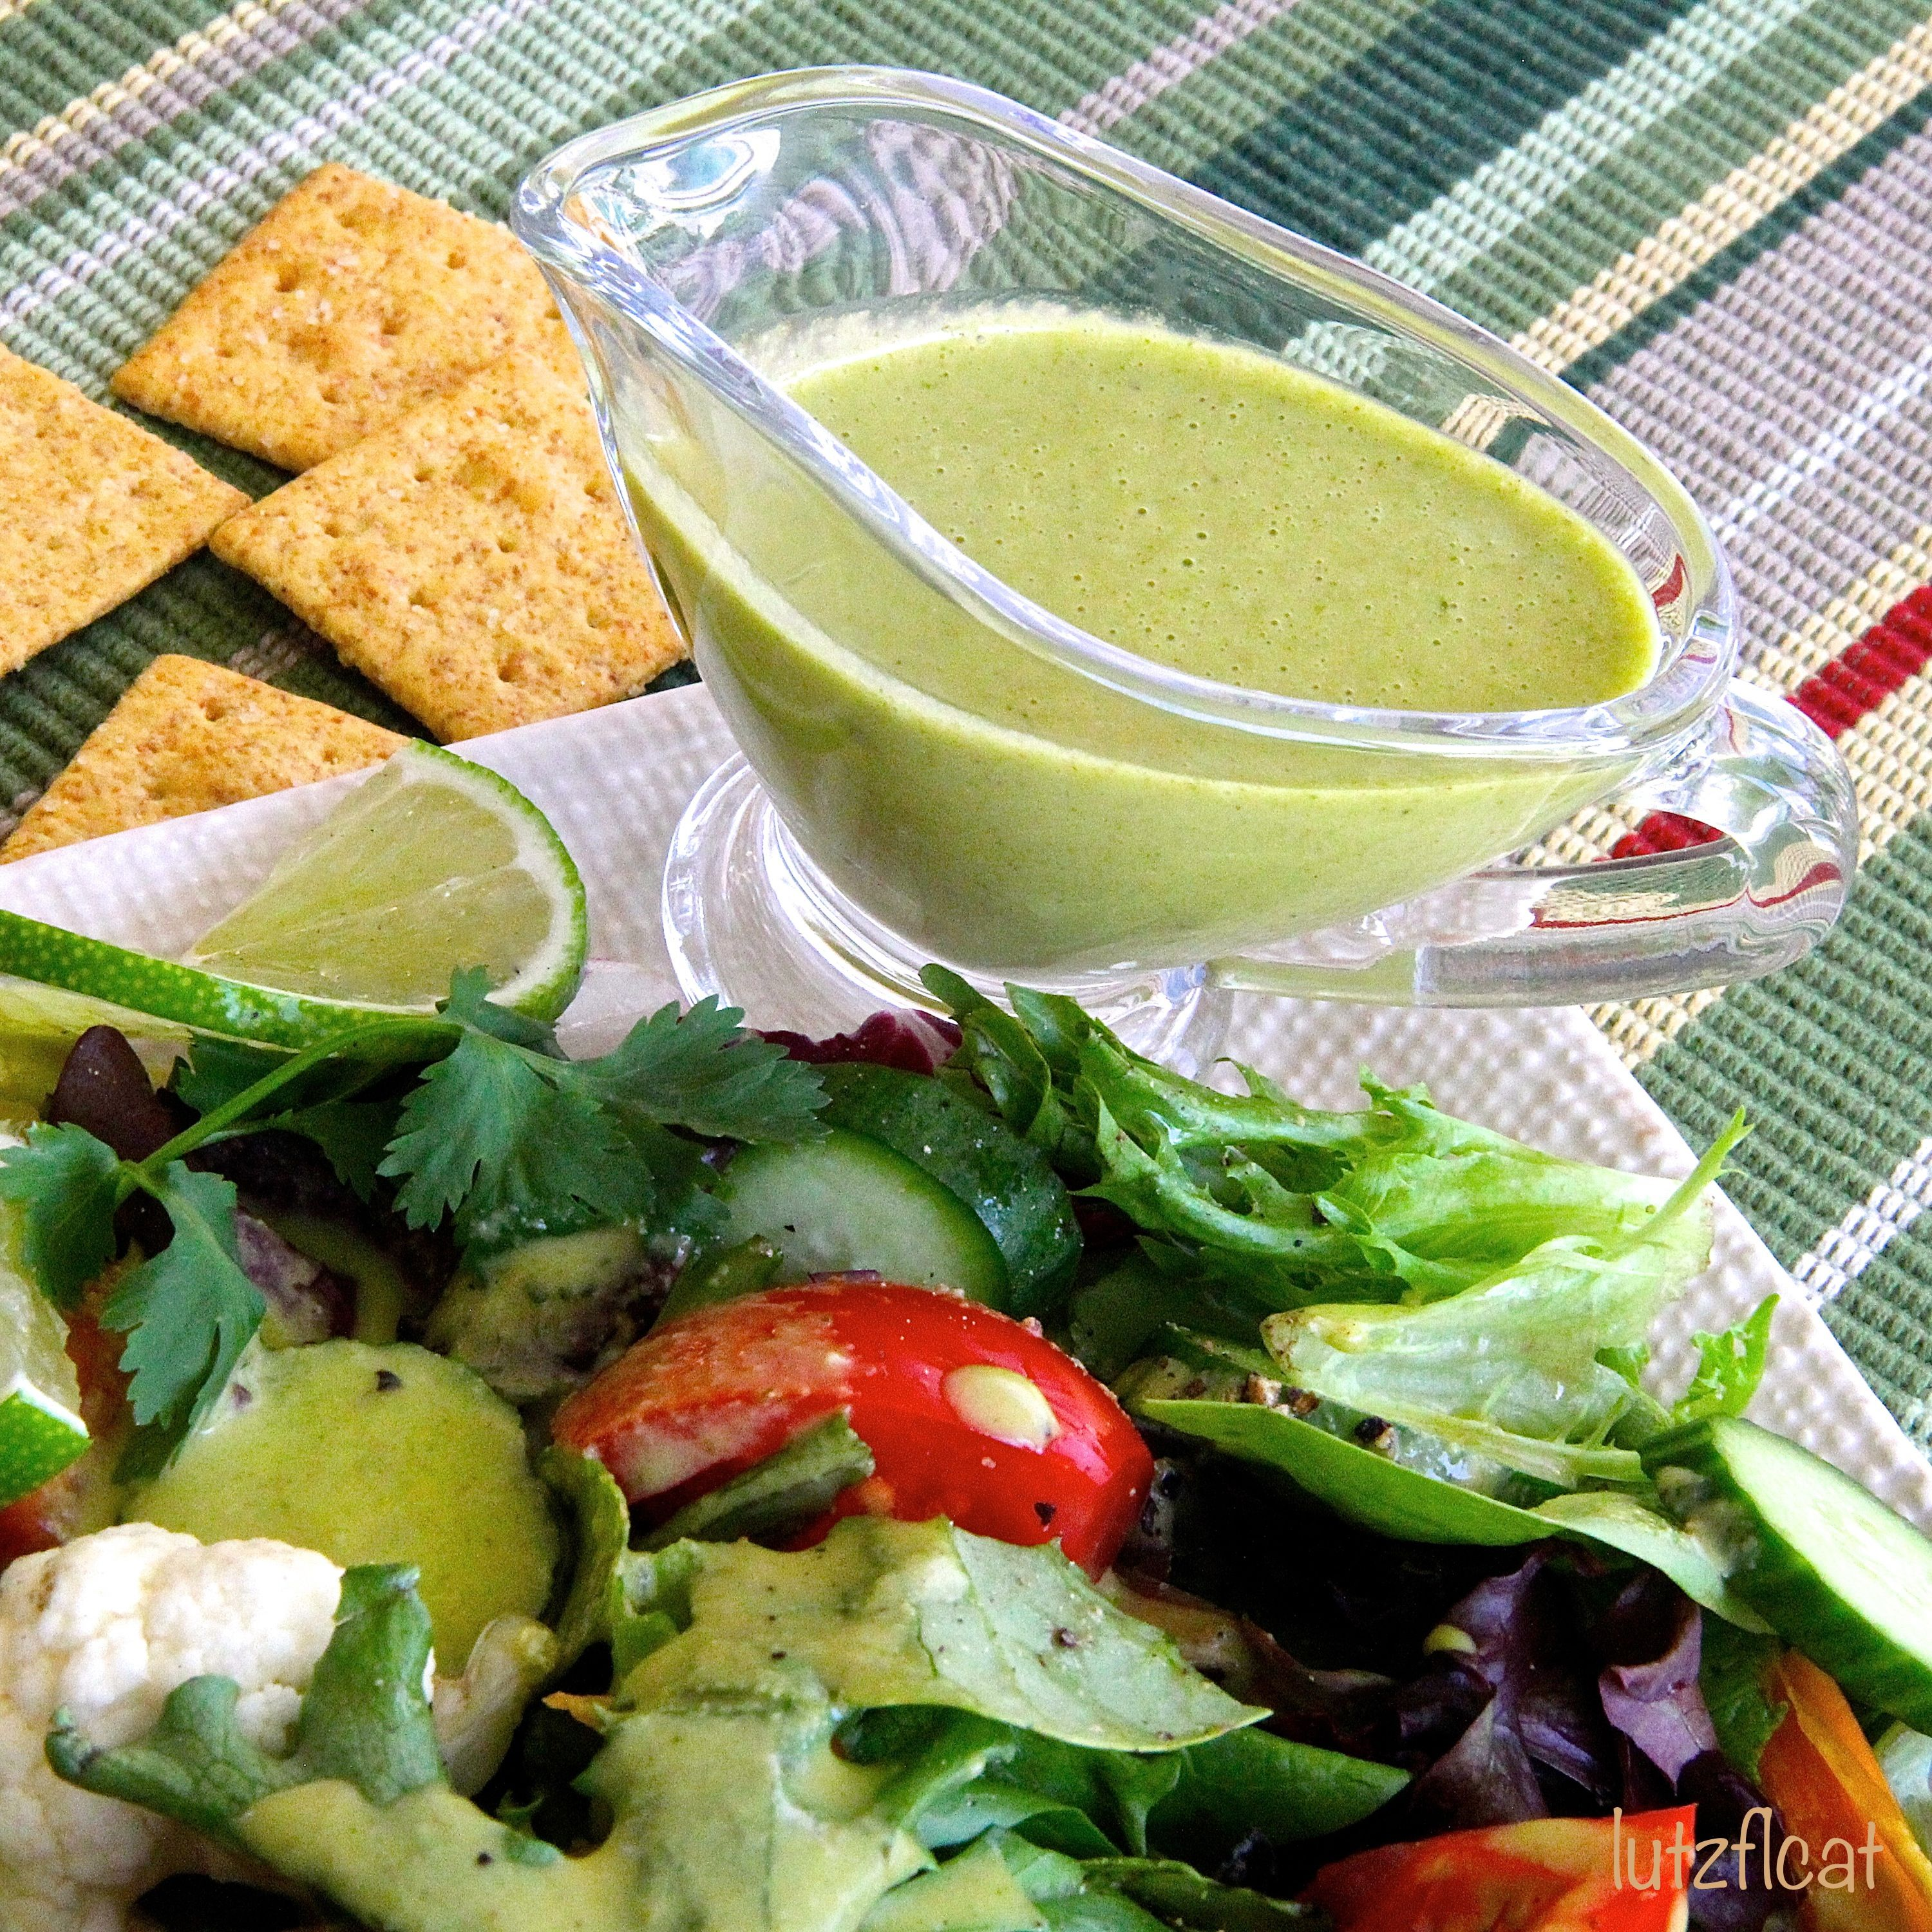 Lime Cilantro Vinaigrette  Made this and it's super good. I added some honey to fight the tart and I didn't put the juice of limes in, I instead cut the lime skin off of two limes and tossed them into the blender. Worked great. I added no salt